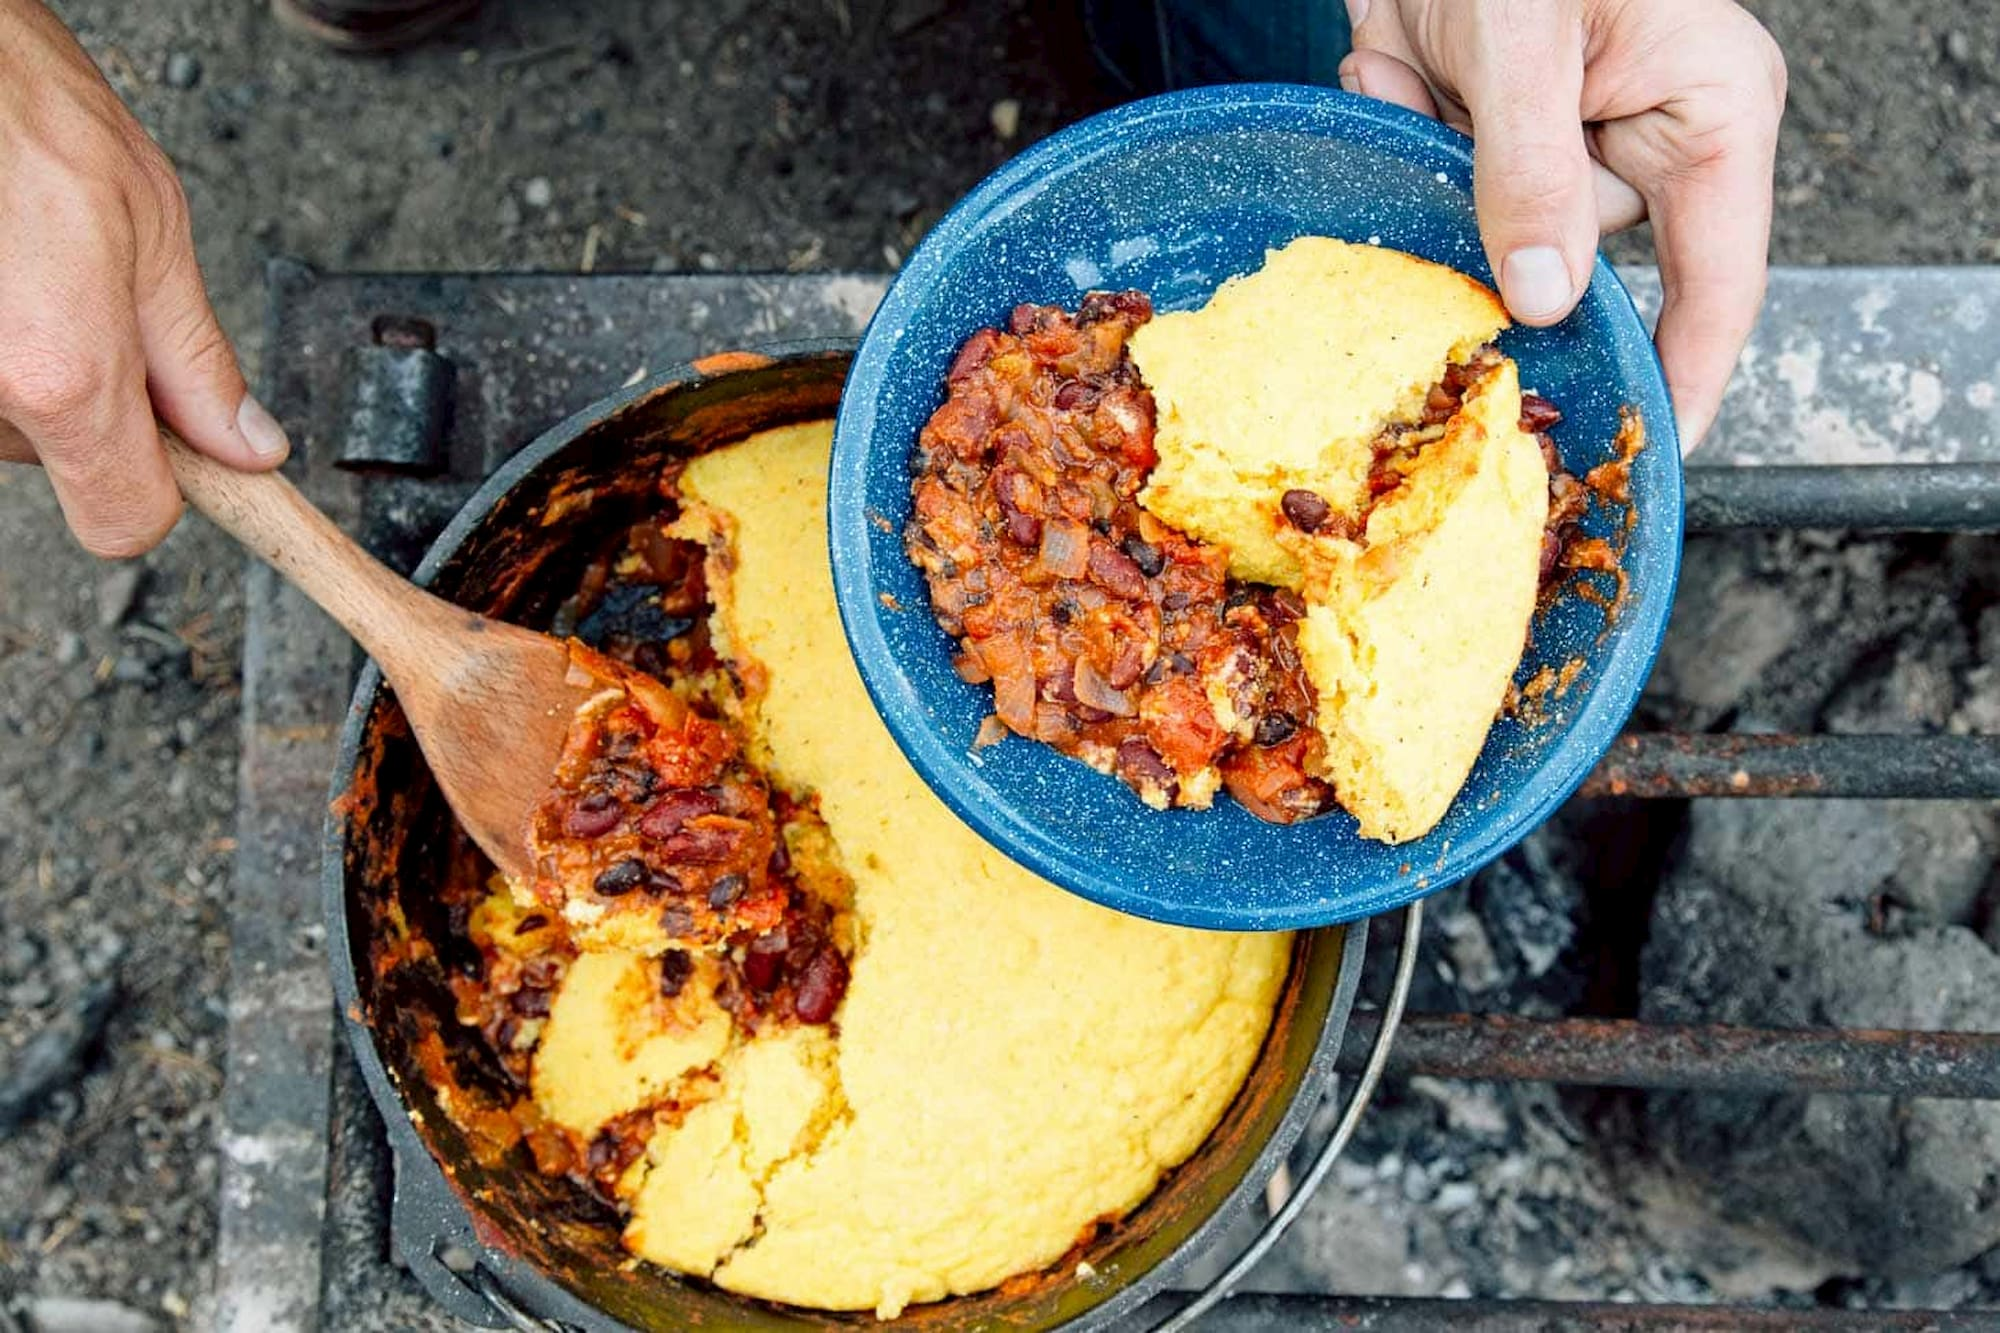 Chili and corn bread baked together in a dutch oven over a campfire.